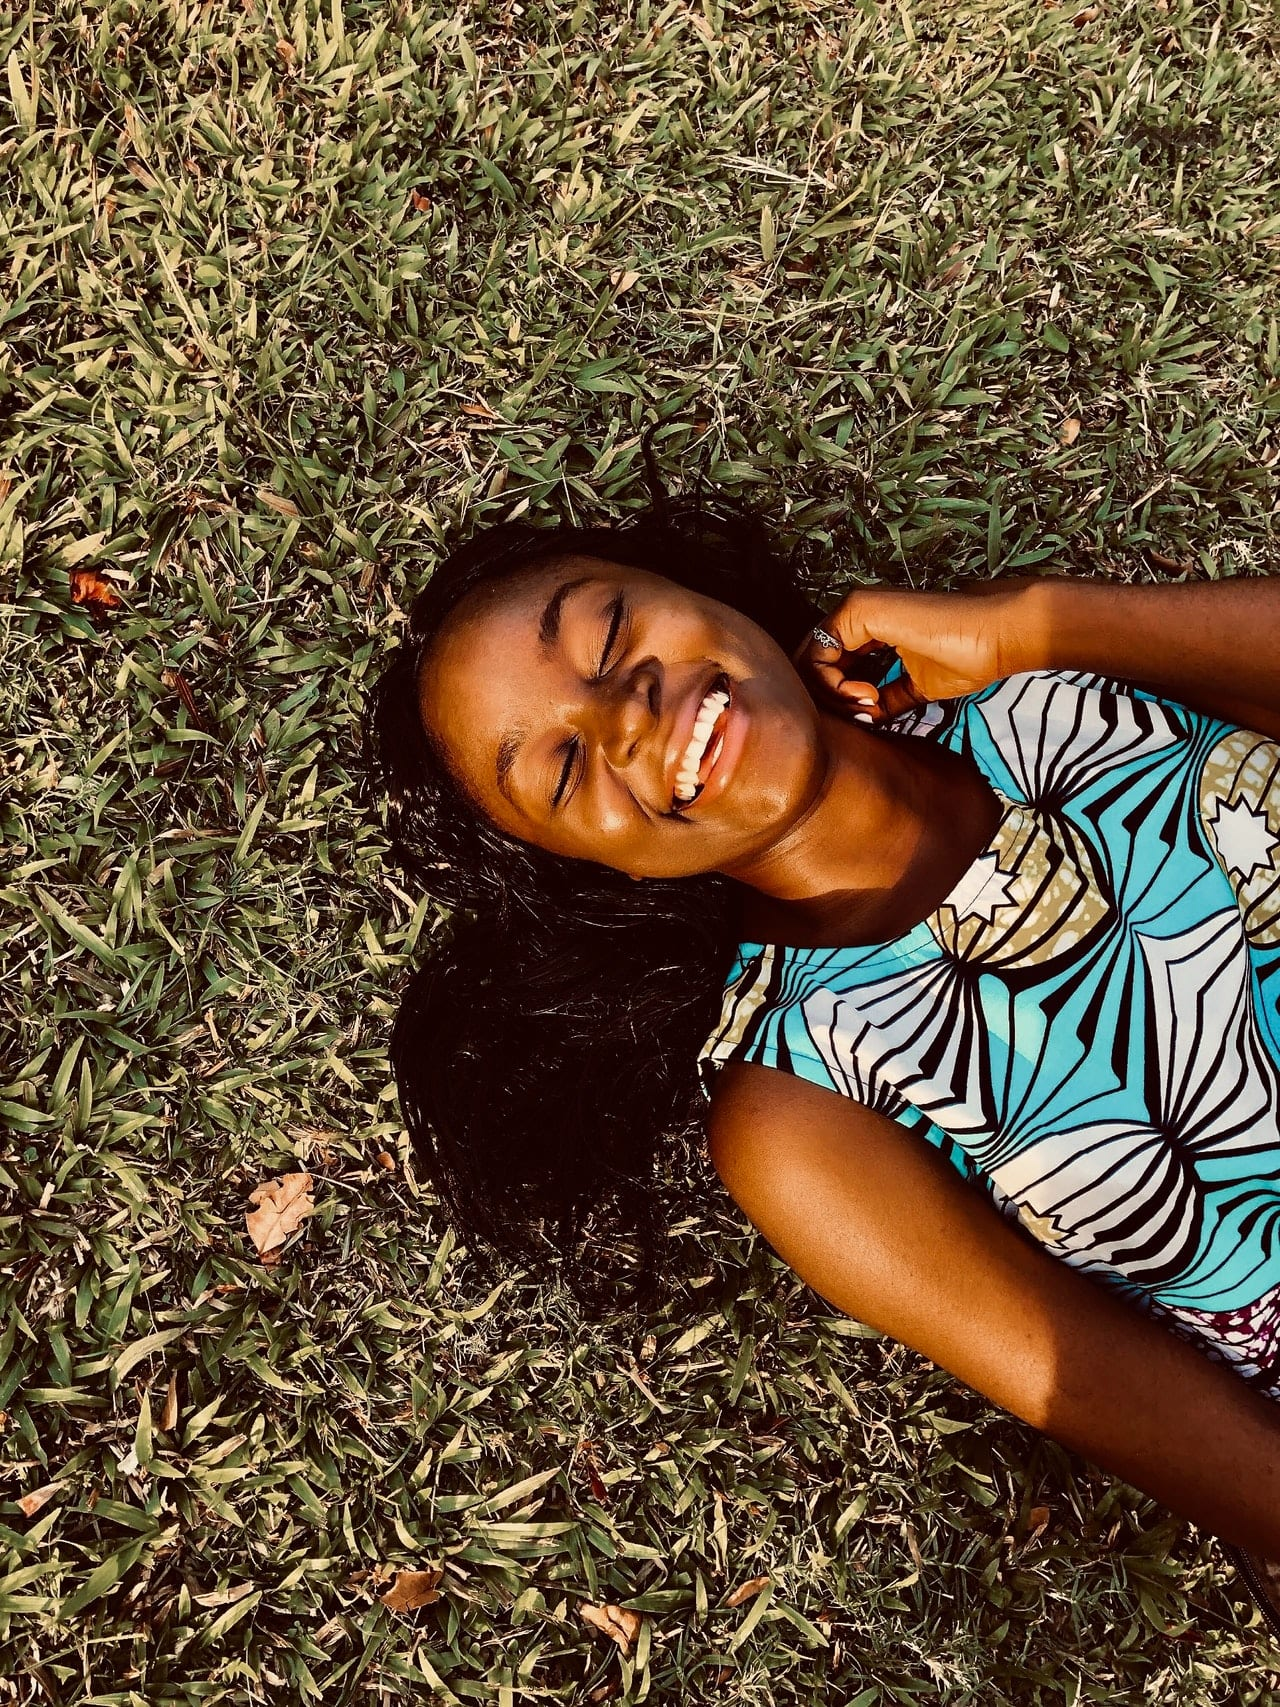 Woman Smiling Lying on Grass